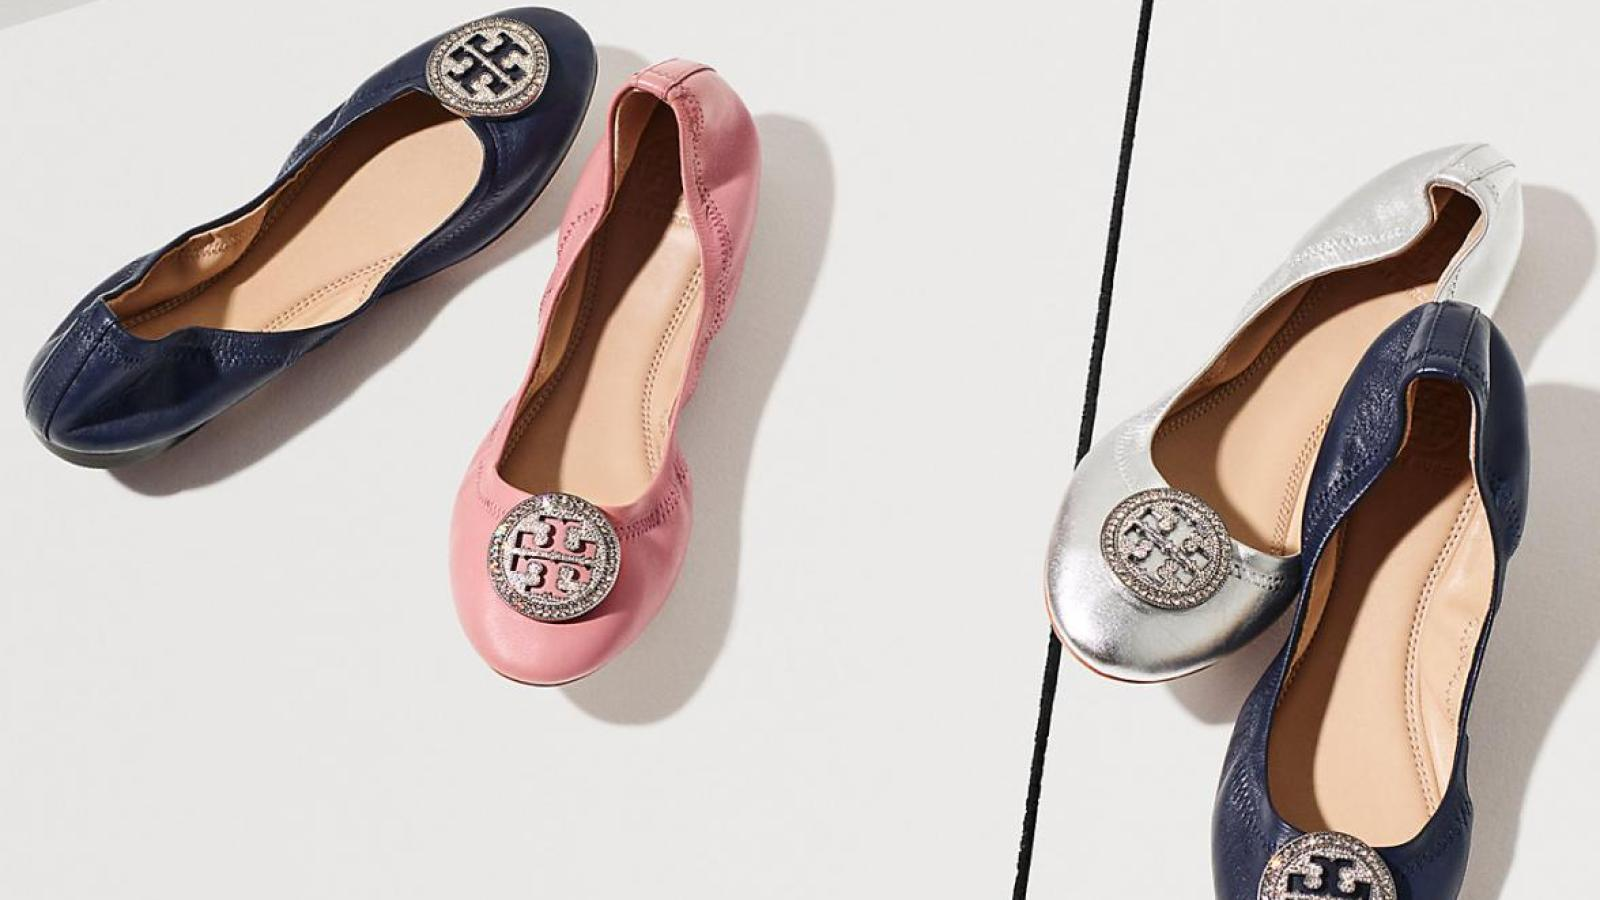 0d7a88691a0 Tory Burch Ballet Flats In Every Color Are on Sale at Nordstrom